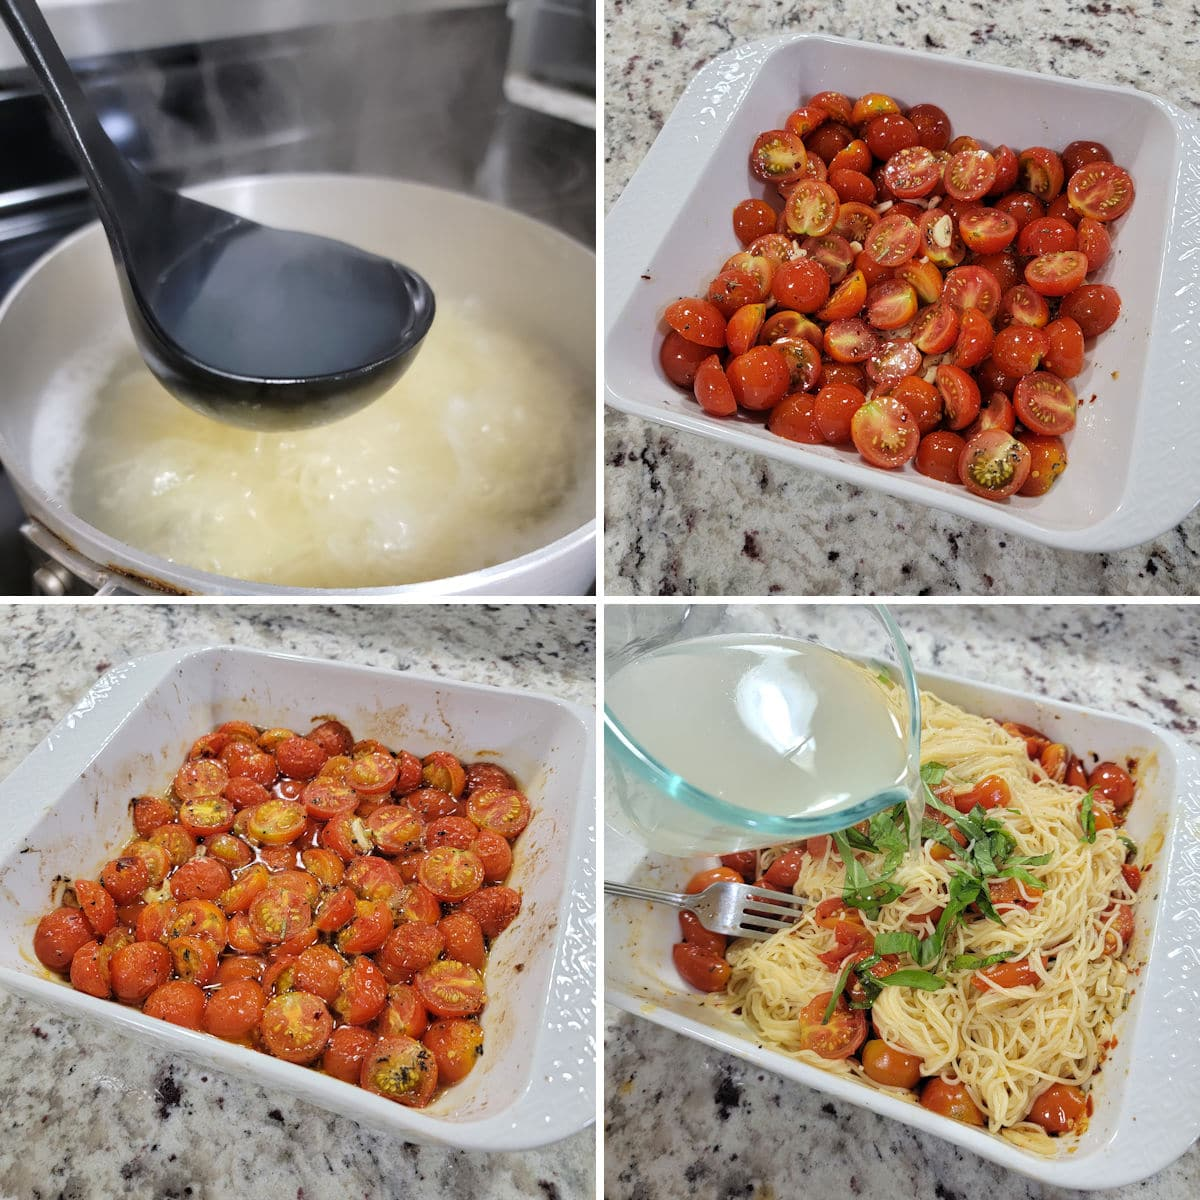 A collage showing the preparation of roasted cherry tomato pasta.